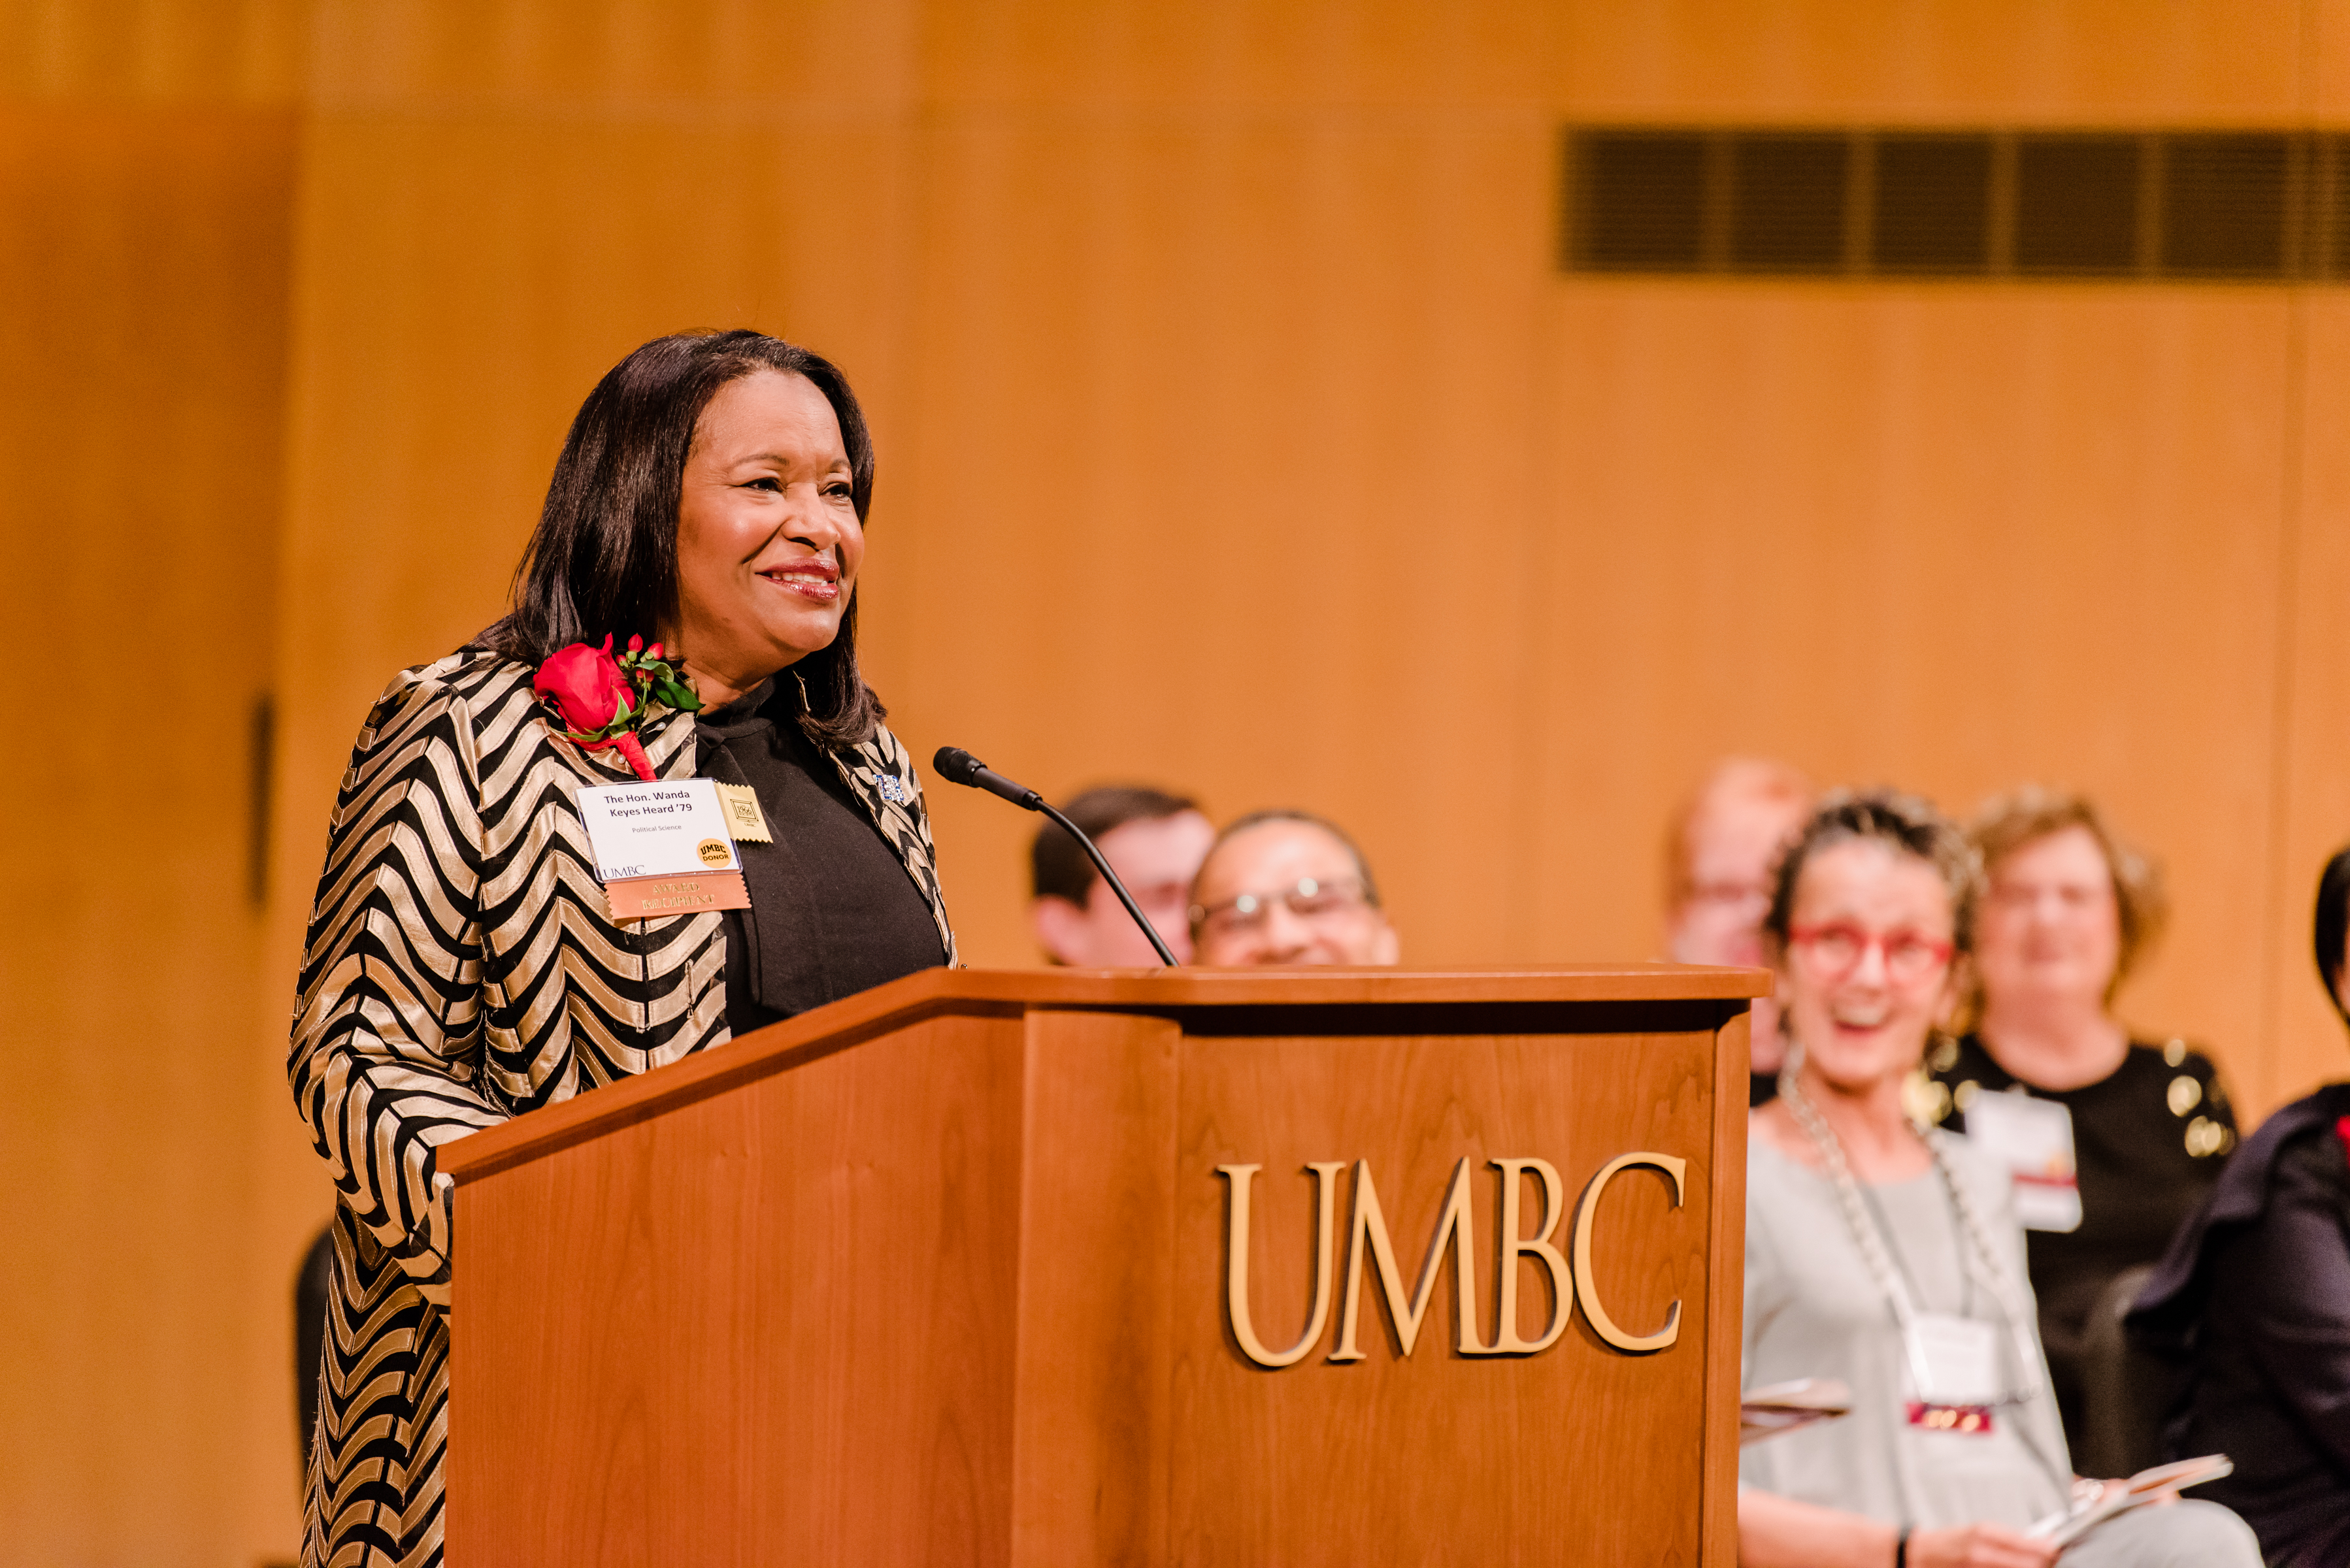 Woman with red flower gives speech at alumni awards